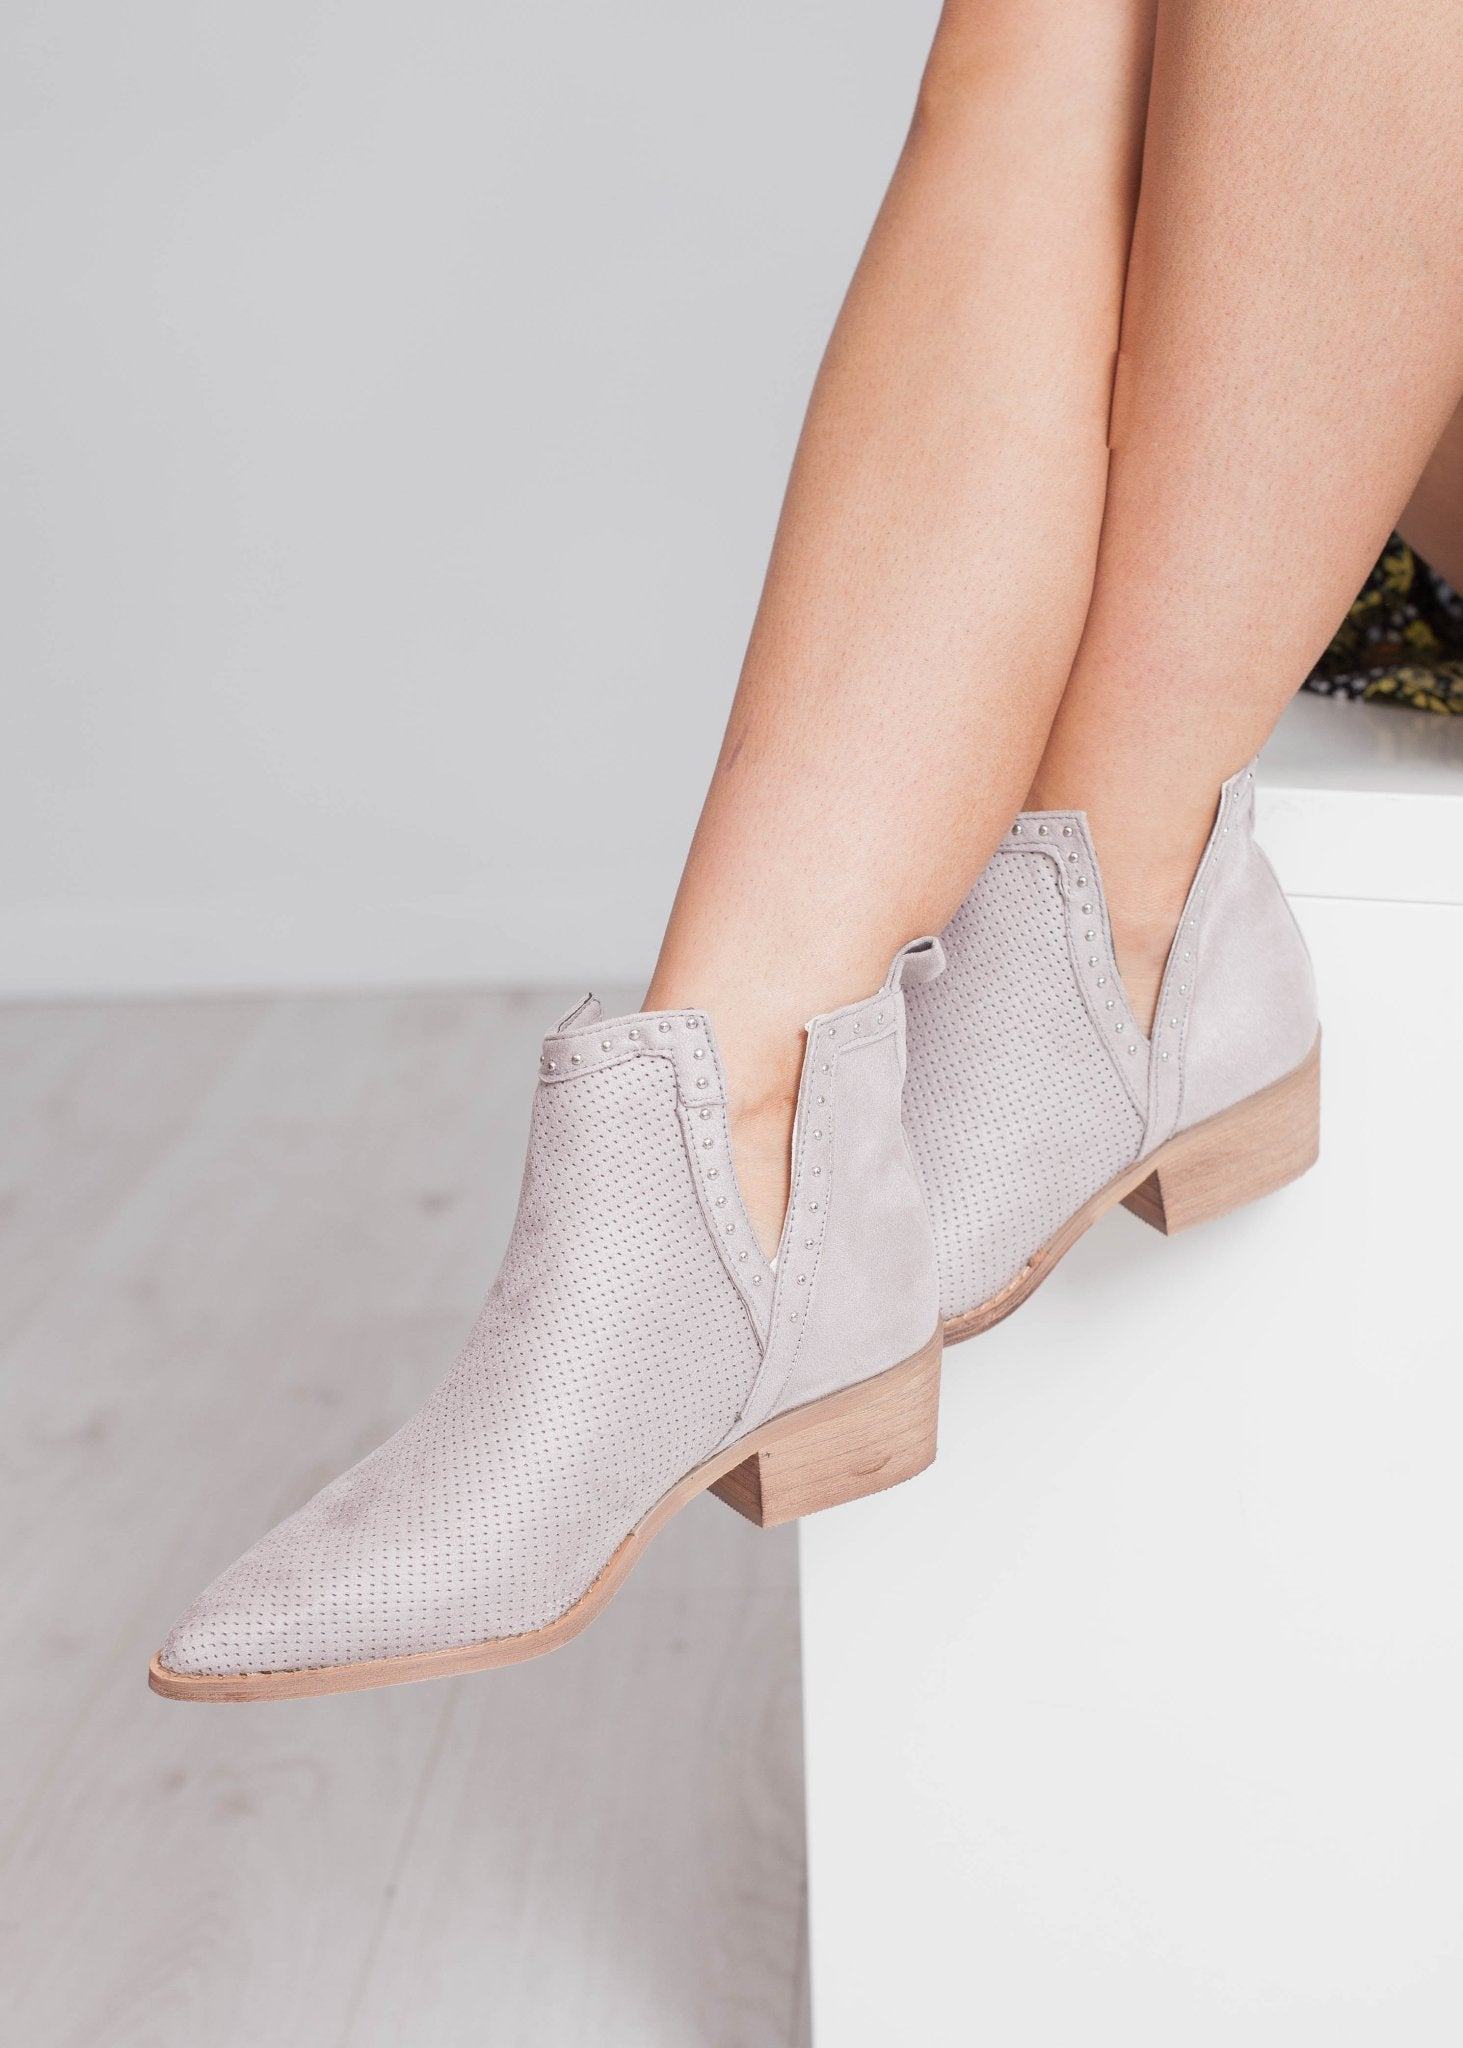 Gabby Cut Out Boot In Grey - The Walk in Wardrobe